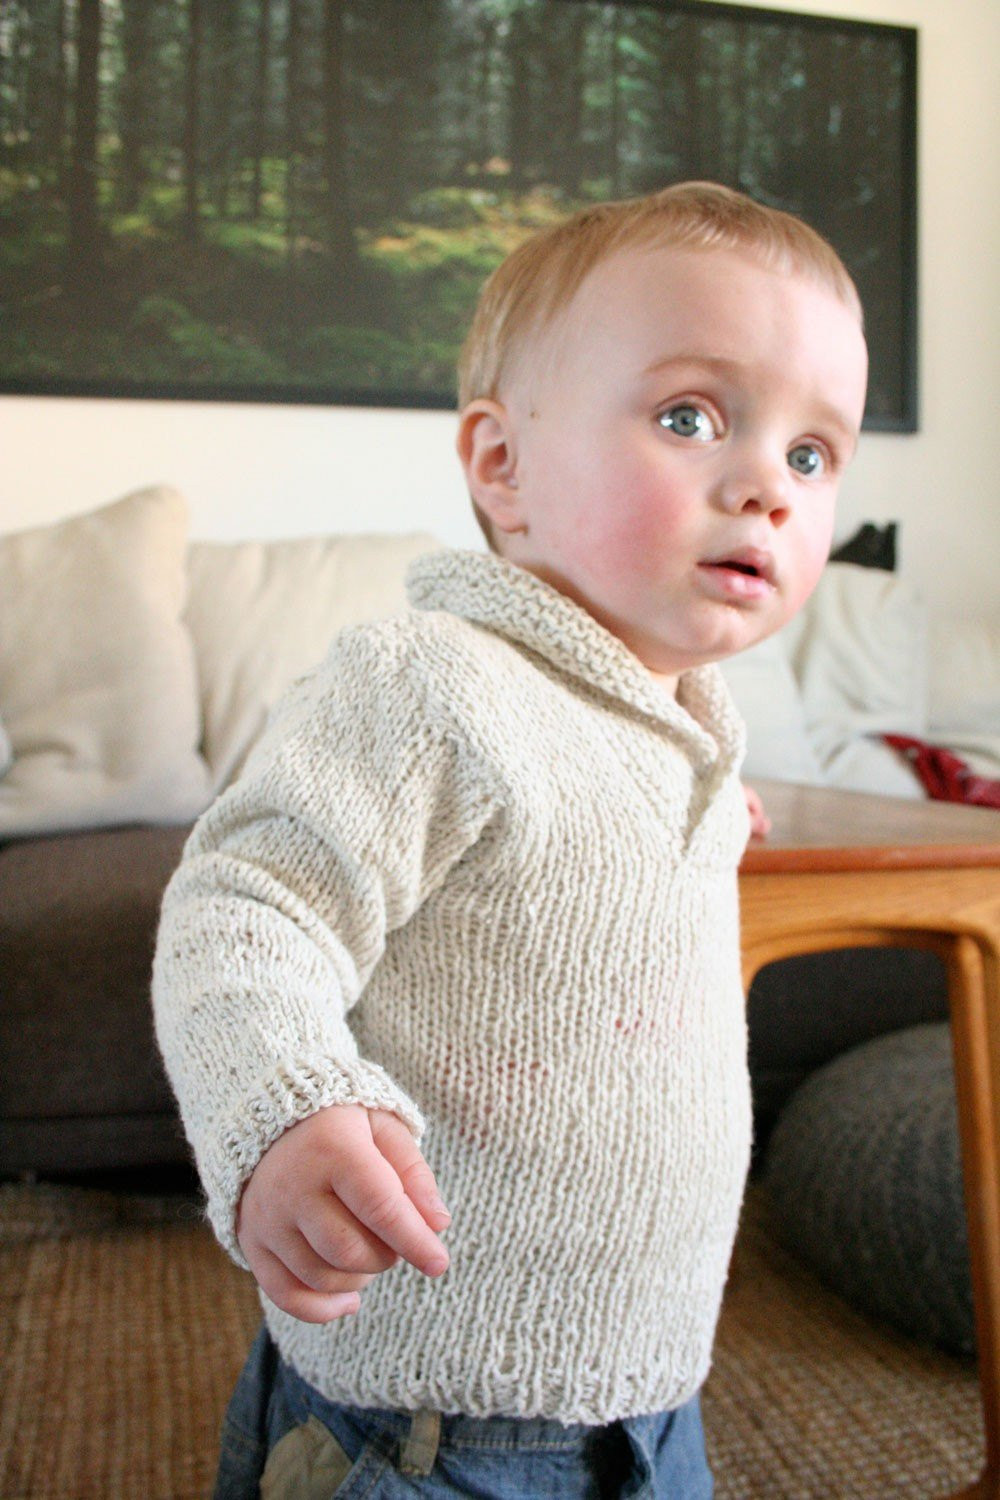 Unique Oh Handsome Sweater Knitting Pattern 12 18 M 18 24 M Boy Sweater Knitting Pattern Of Incredible 49 Ideas Boy Sweater Knitting Pattern